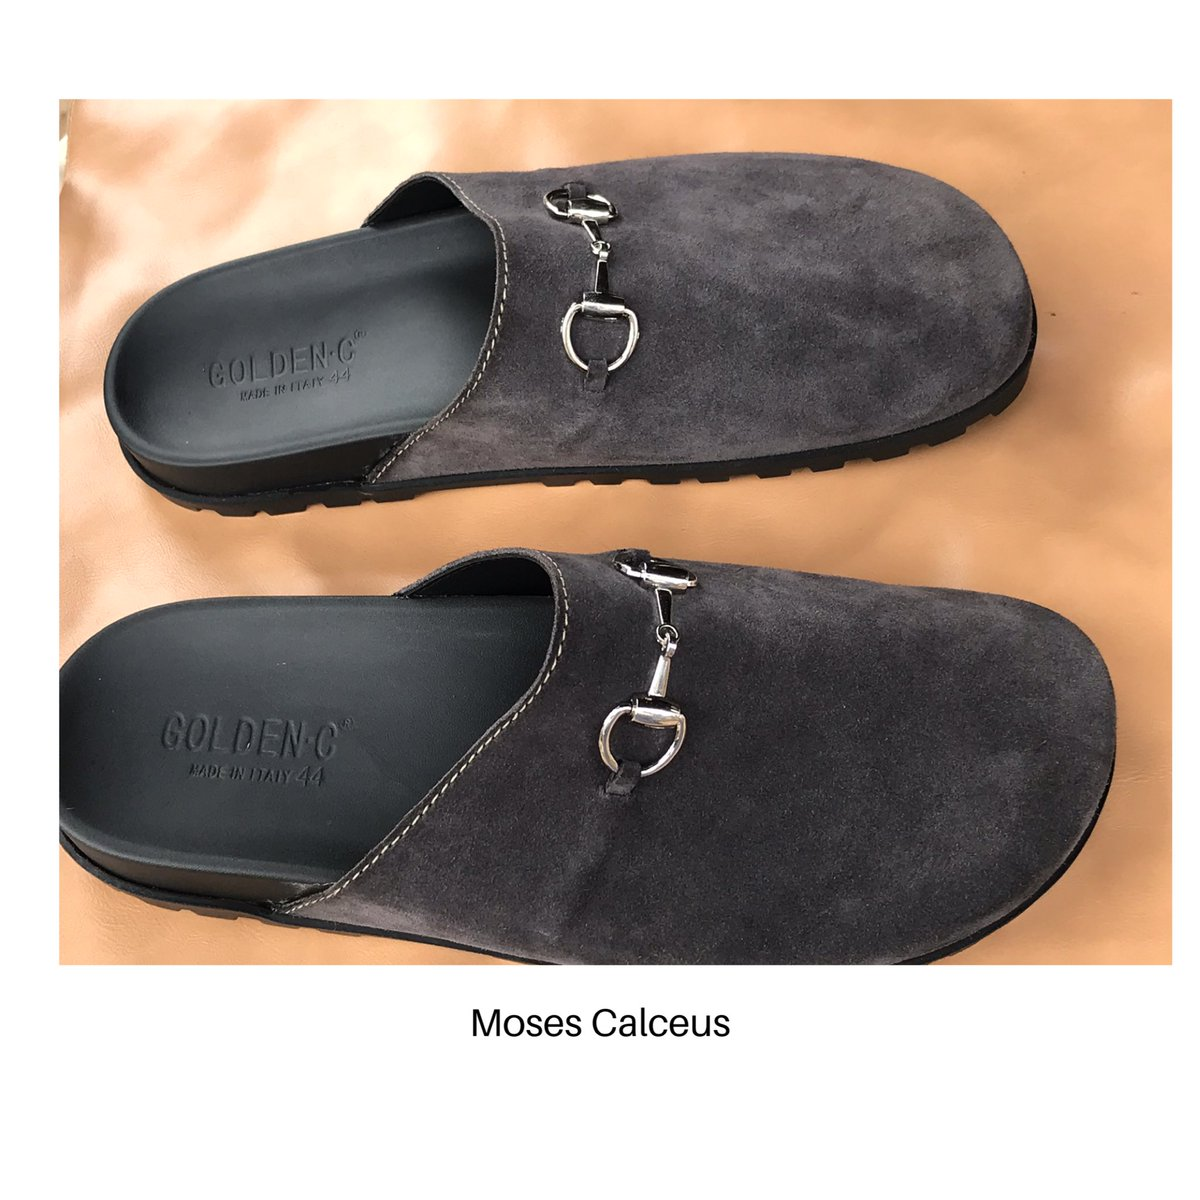 If you come across this tweet please retweet  Moses Calceus   All handmade.  Available on Order. #mosescalceus #handmade #madeinNigeriapic.twitter.com/tFEV55bZeq